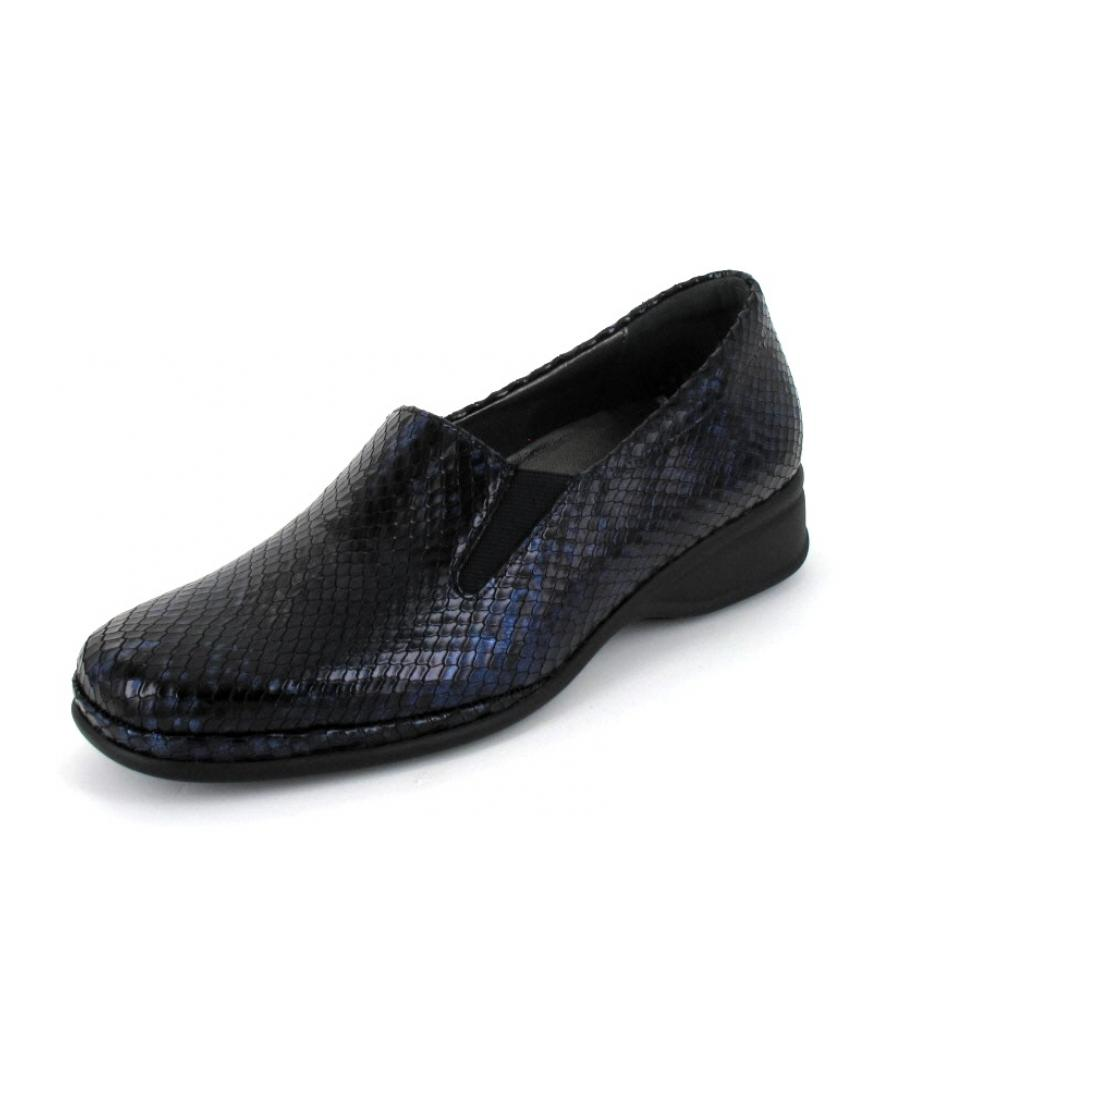 Semler Slipper